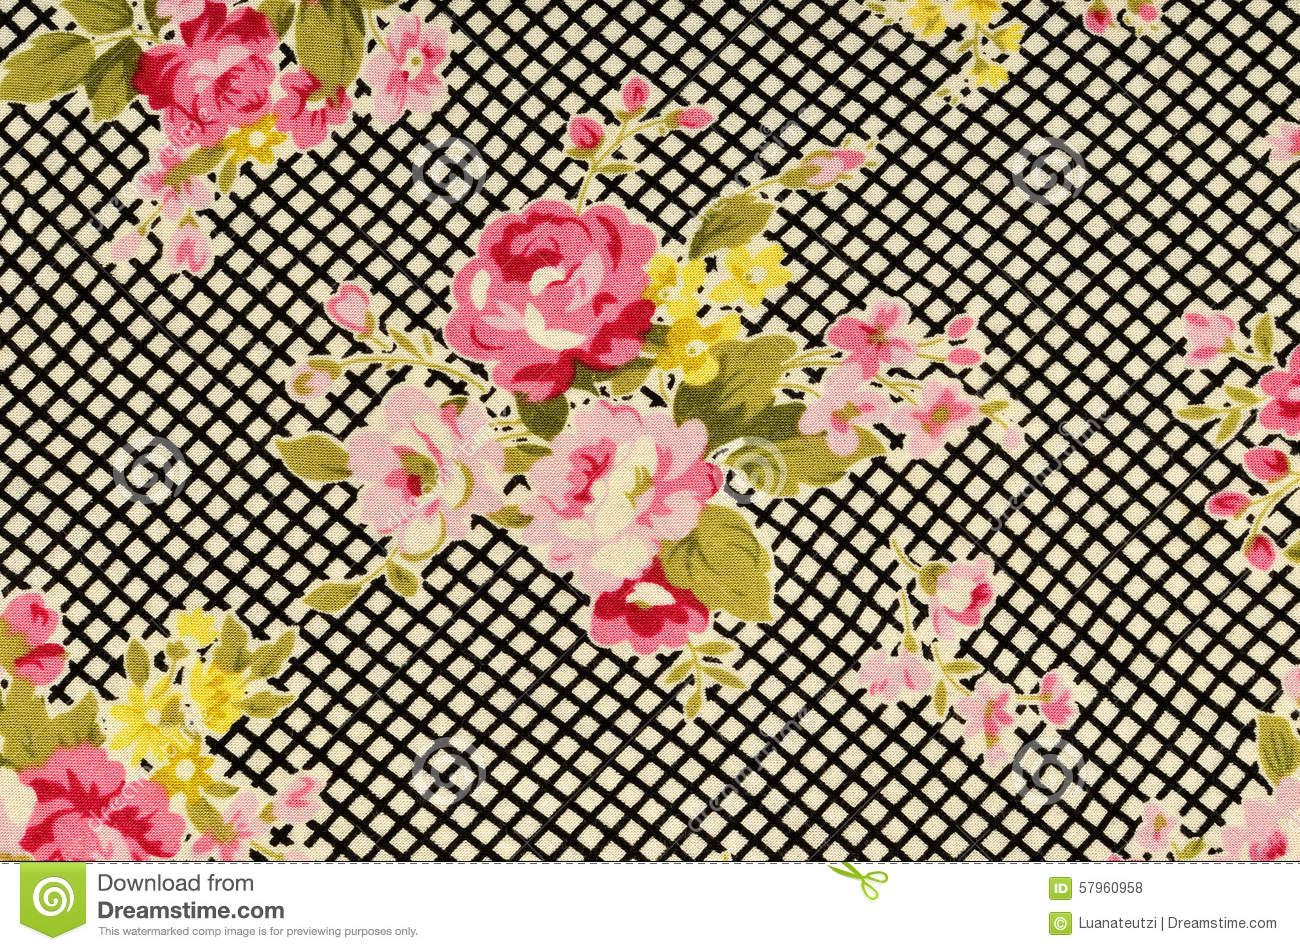 Pink Roses On Black And White Stripe Fabric Stock Photo Image Of